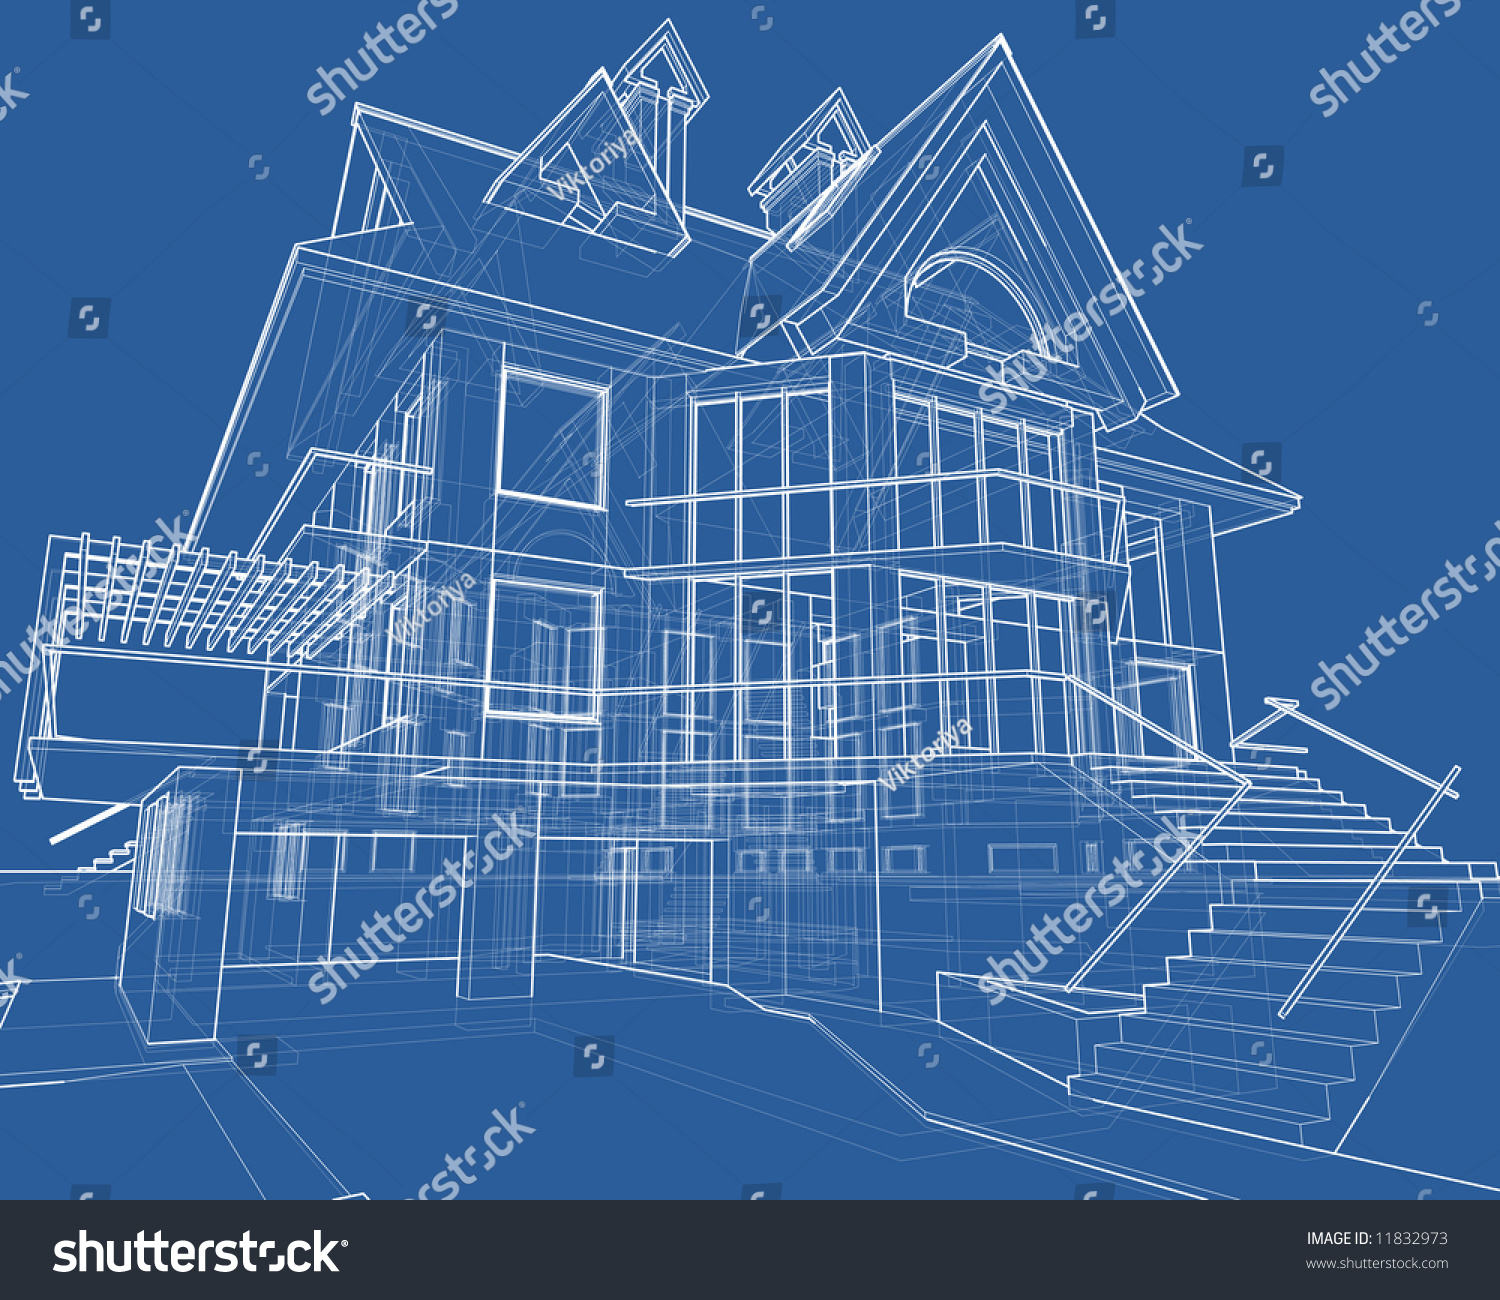 House blueprint 3d technical draw stock illustration for House blueprint images